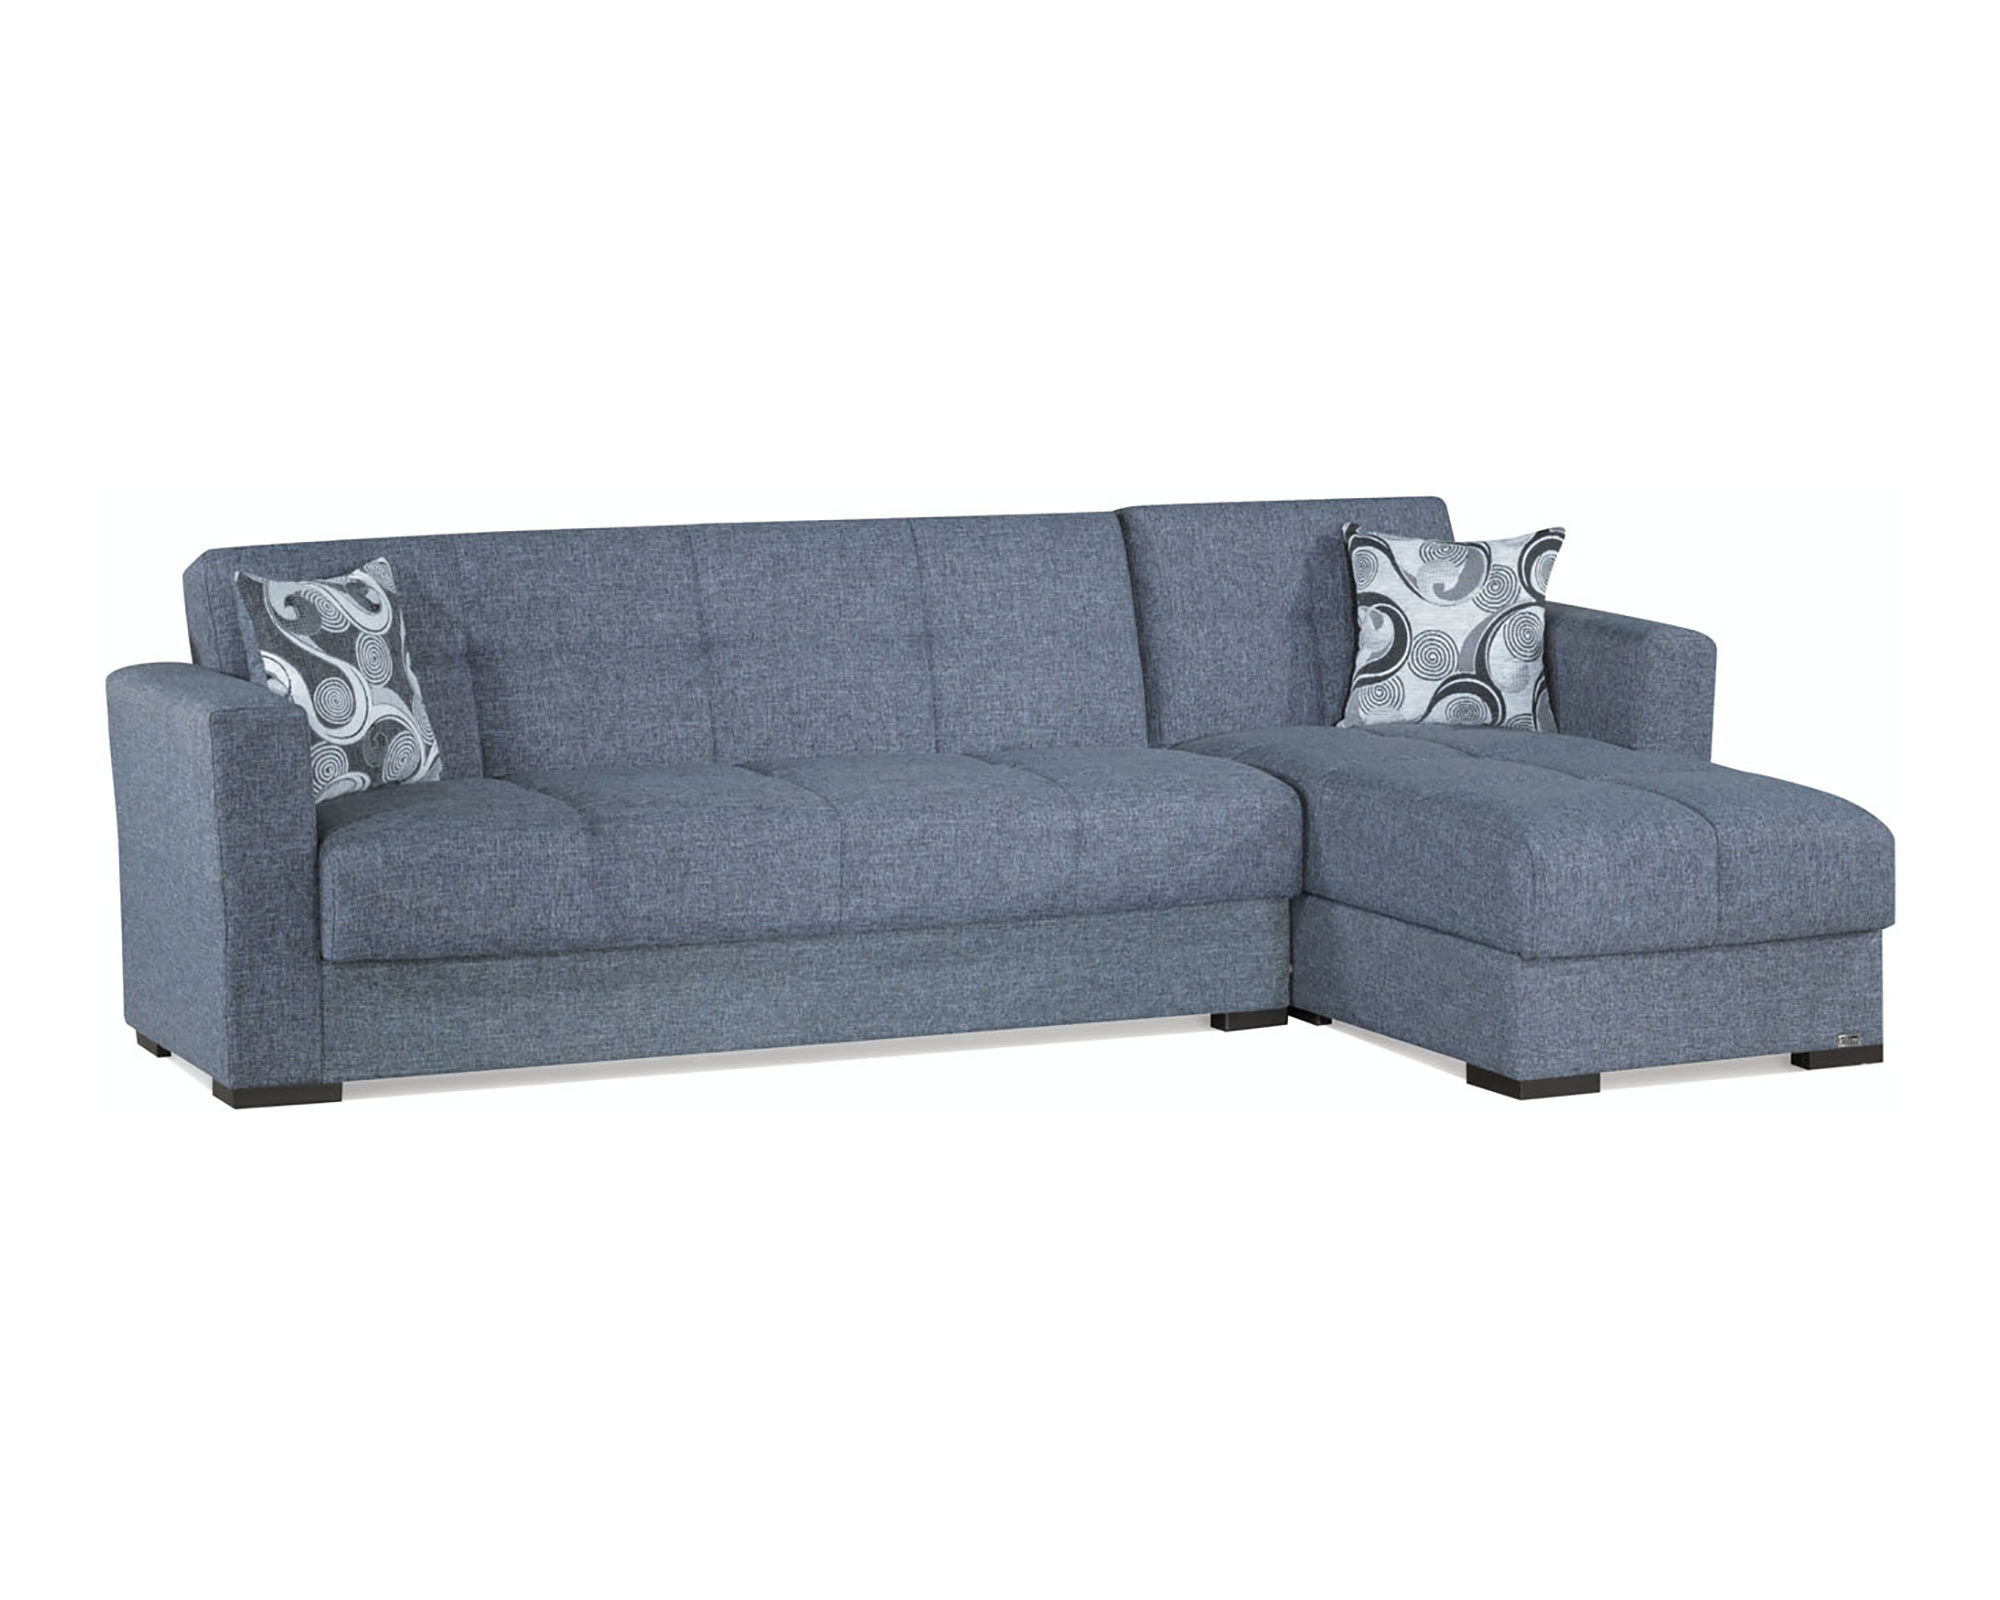 Mystic Gray Convertible Sectional by Casamode